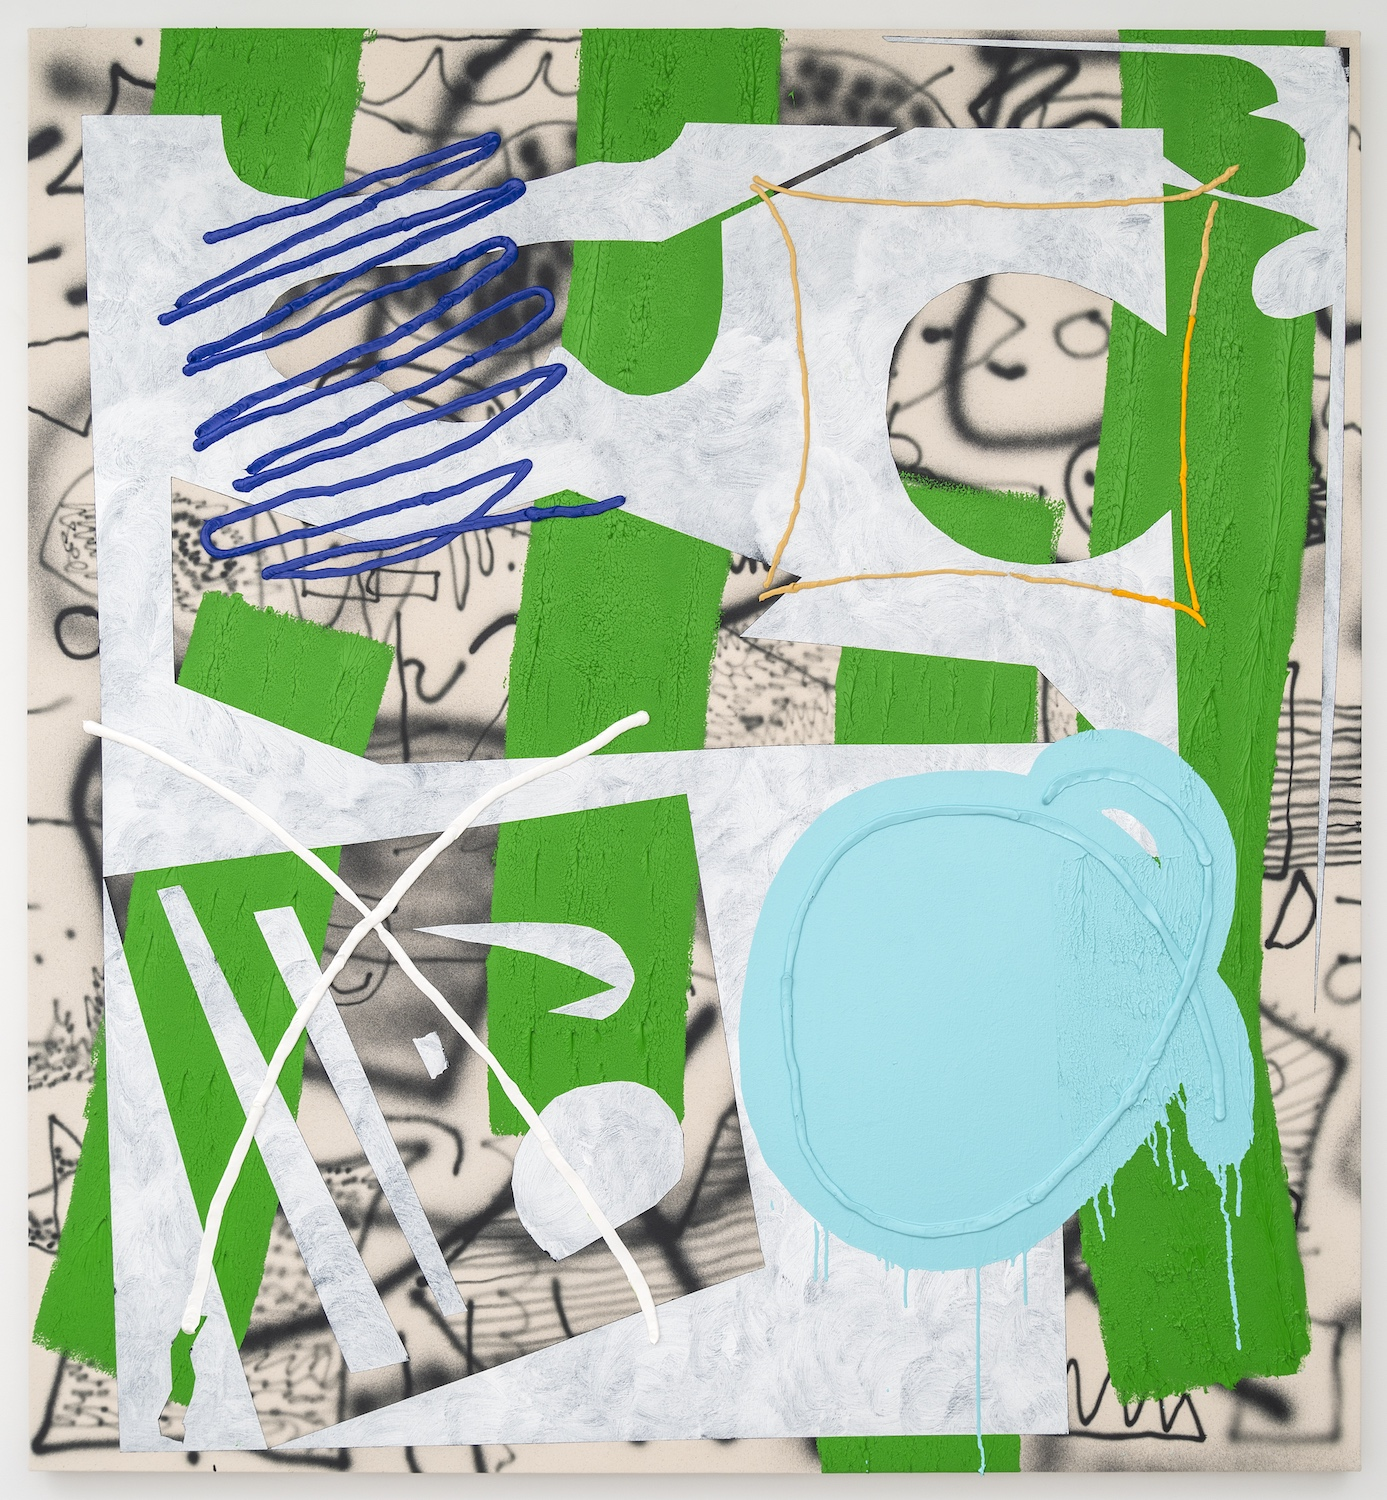 Trudy Benson   Blue Selection , 2015  Acrylic, enamel, and oil on canvas  66 x 61 inches